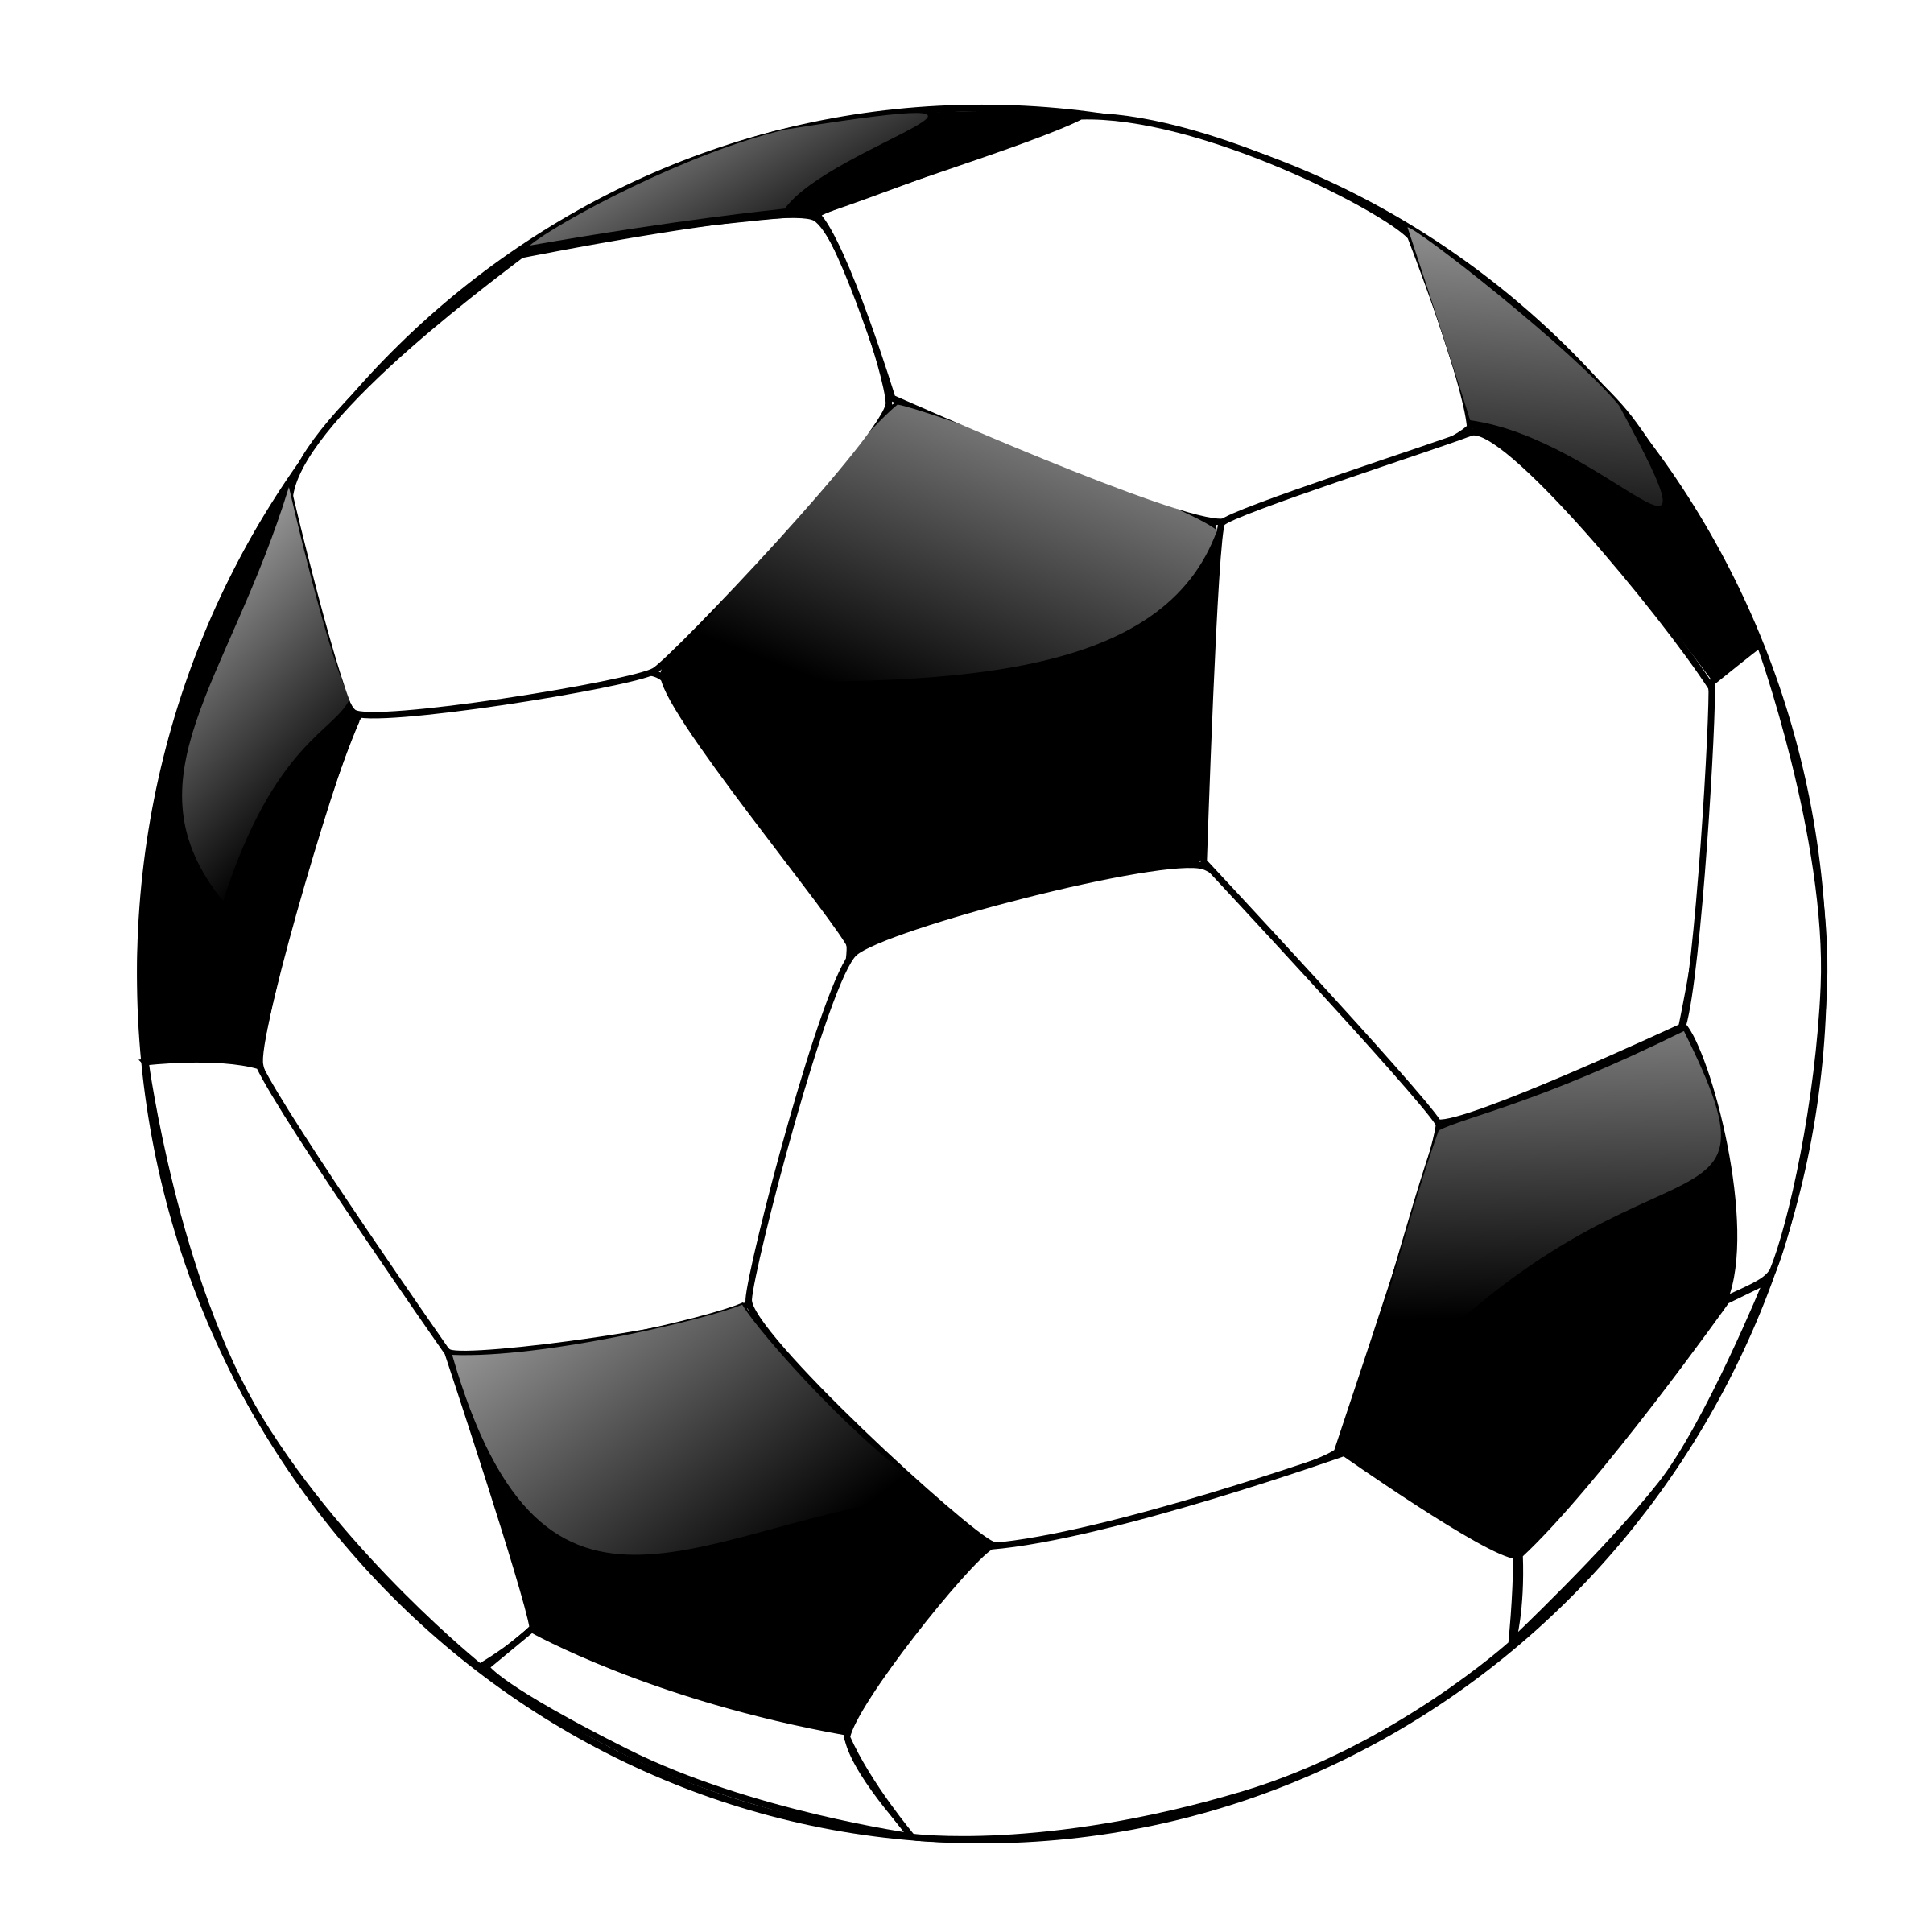 Clipart football black and white image freeuse Clipart - Football image freeuse